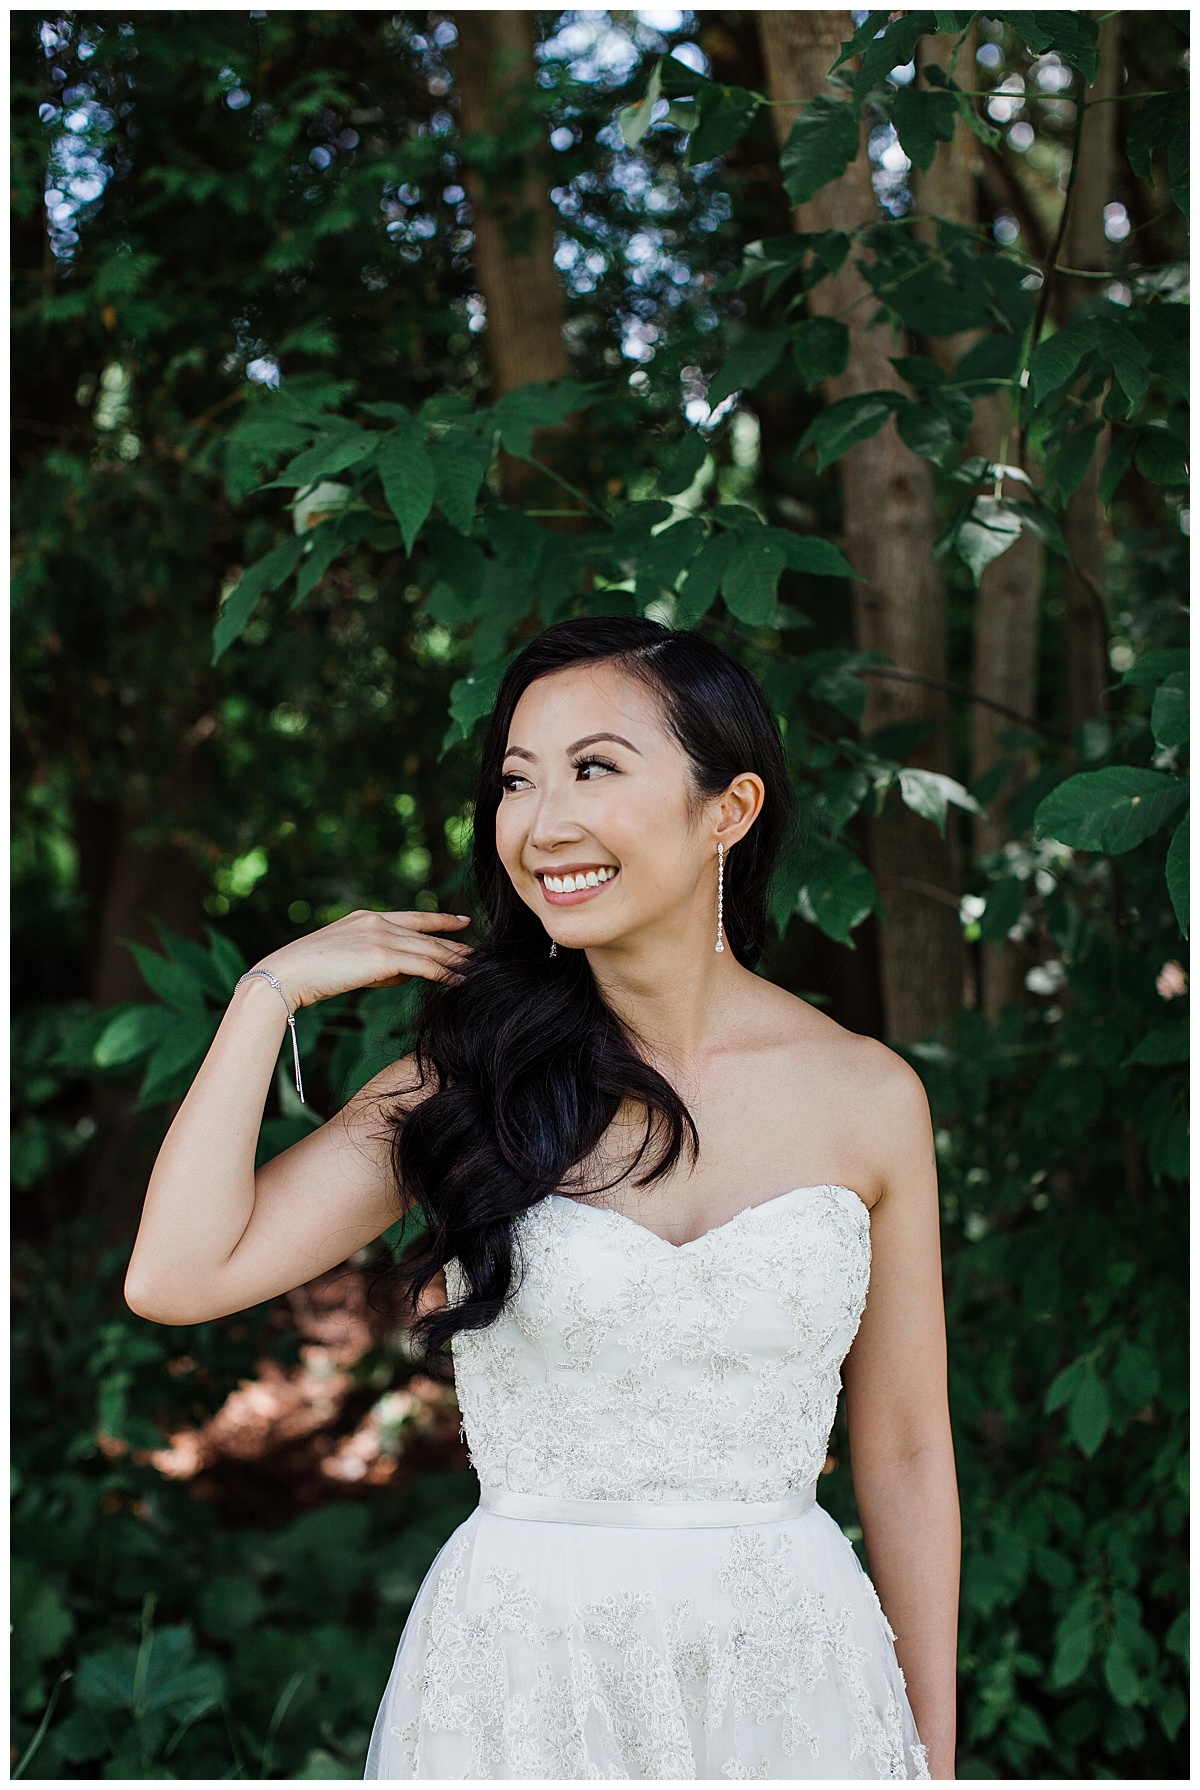 Bride smiling and looking to the side while sweeping hair over her shoulder| outdoor bridal portrait| Bride under tree| asian bride| sweetheart neckline gown| Toronto photographer| 3photography